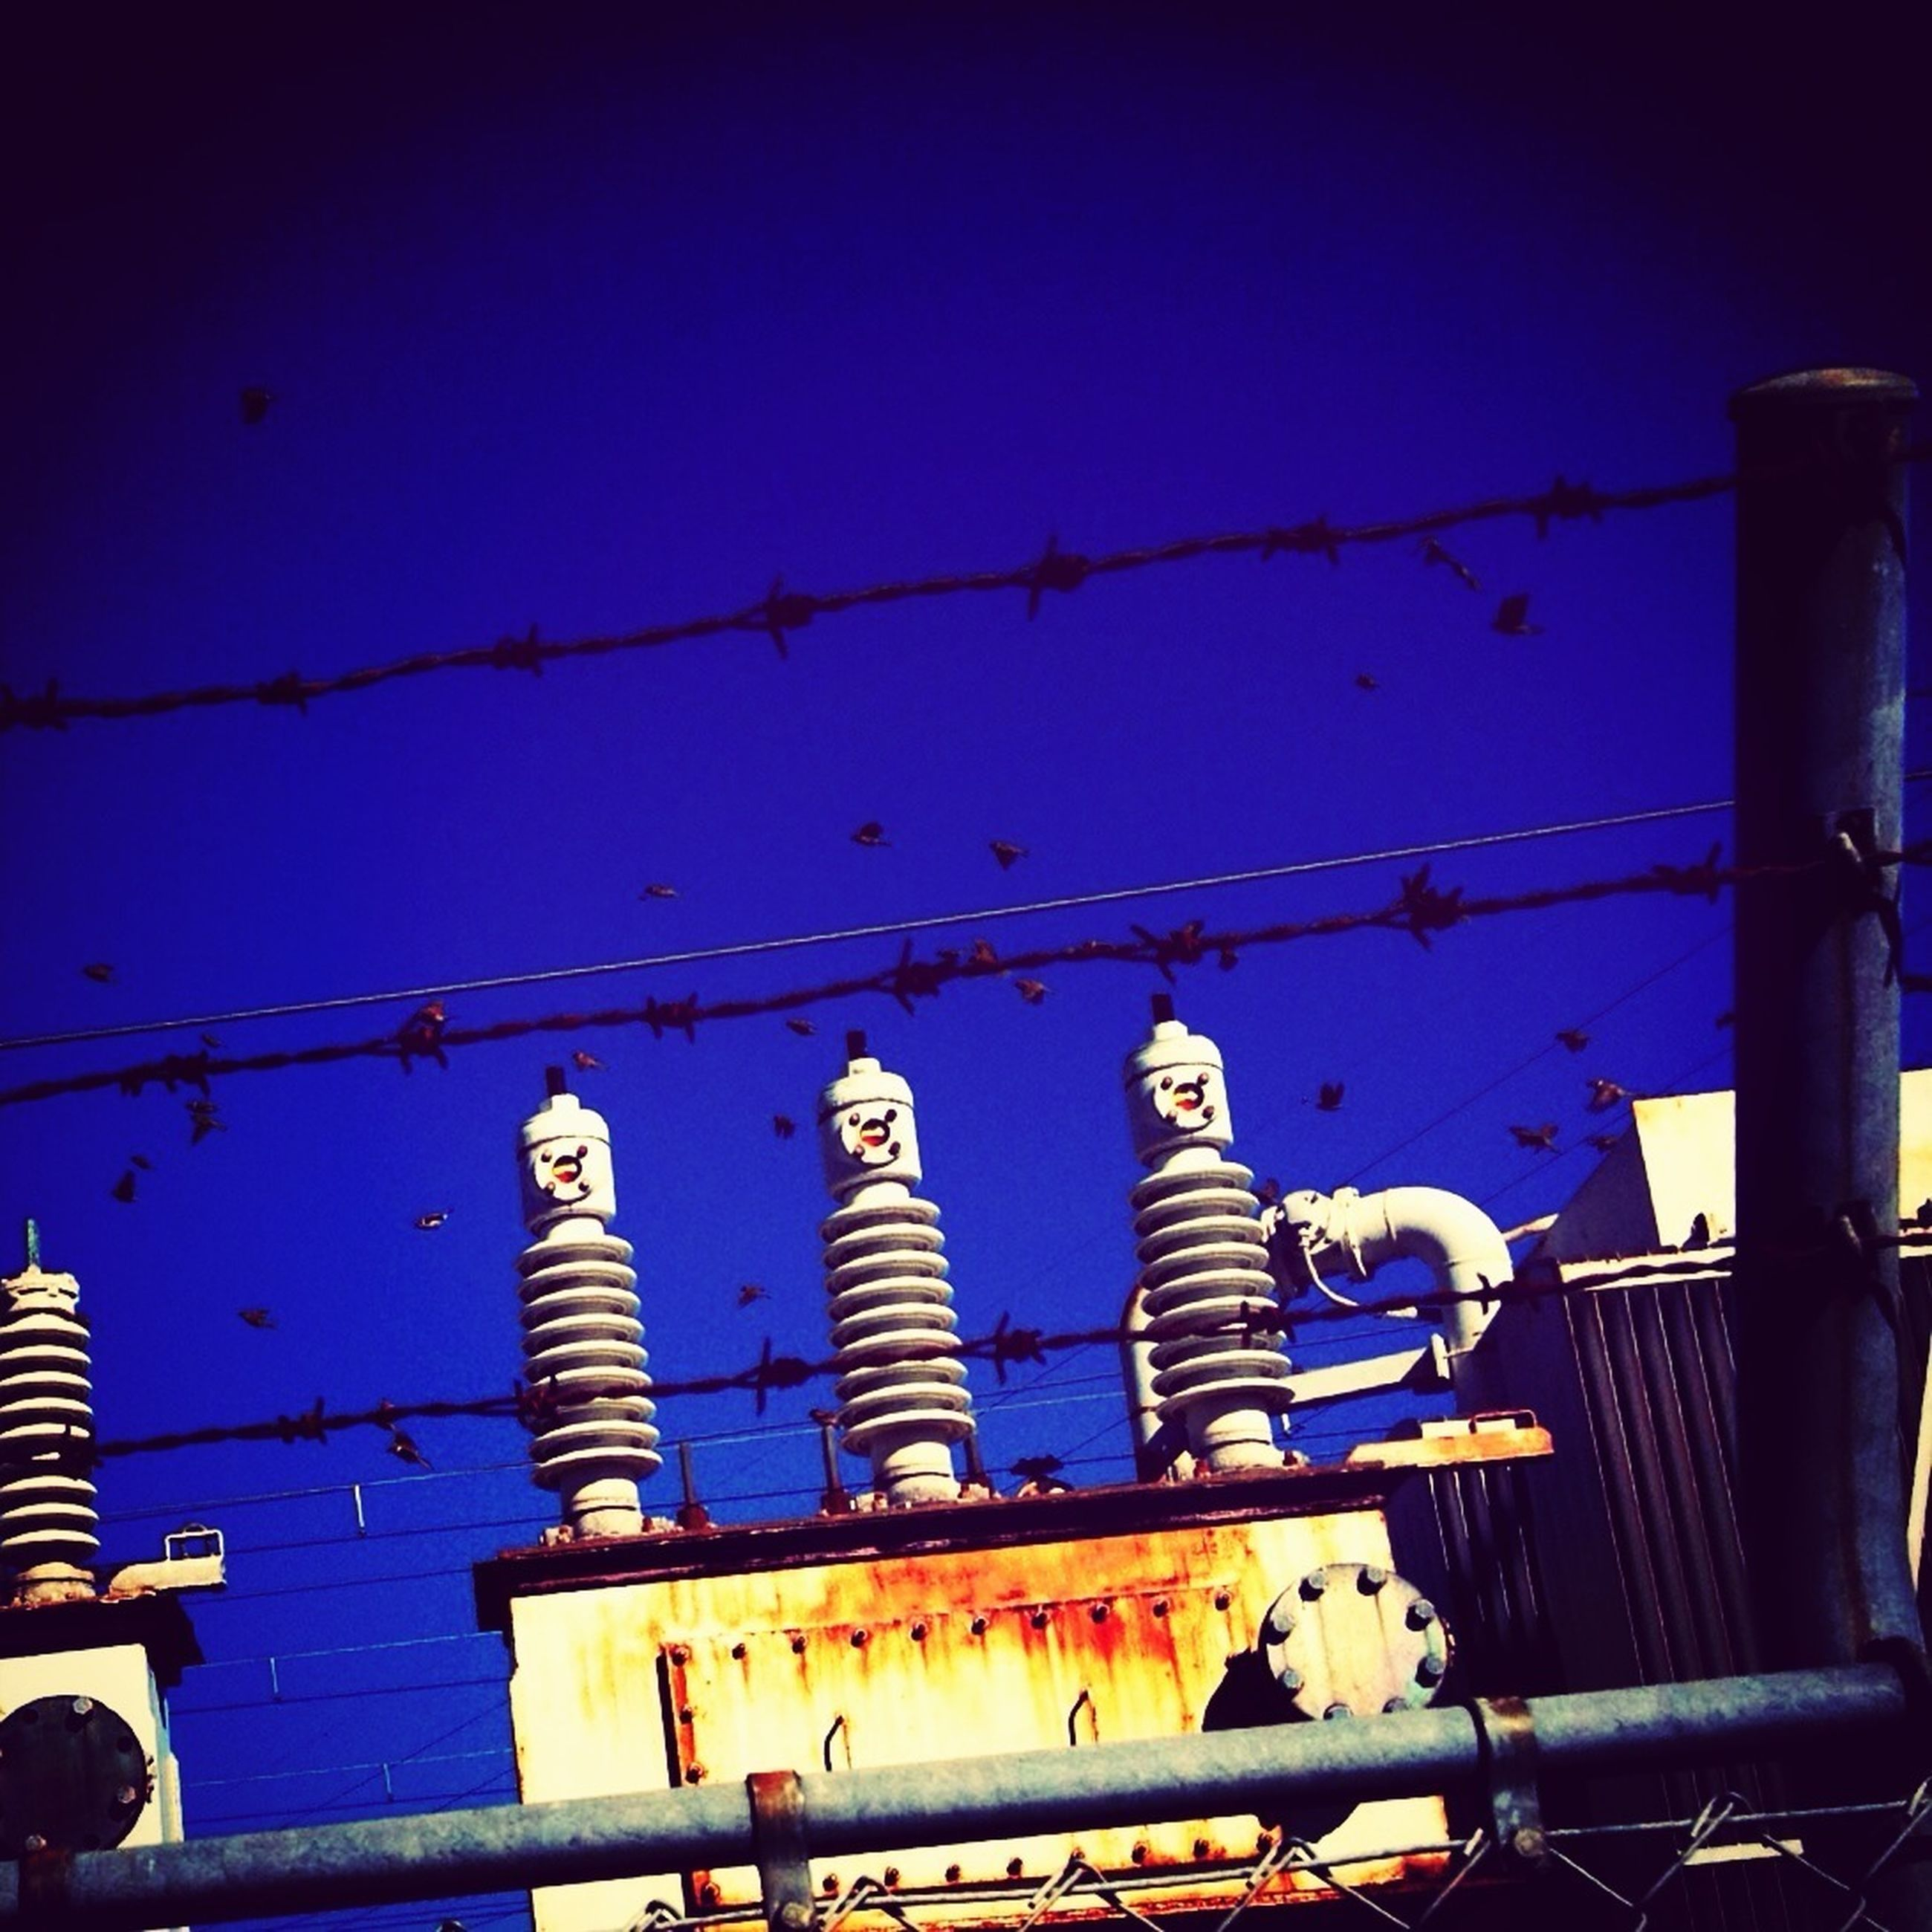 metal, blue, low angle view, sky, rusty, metallic, industry, no people, built structure, abandoned, outdoors, factory, in a row, old, day, architecture, equipment, side by side, building exterior, run-down